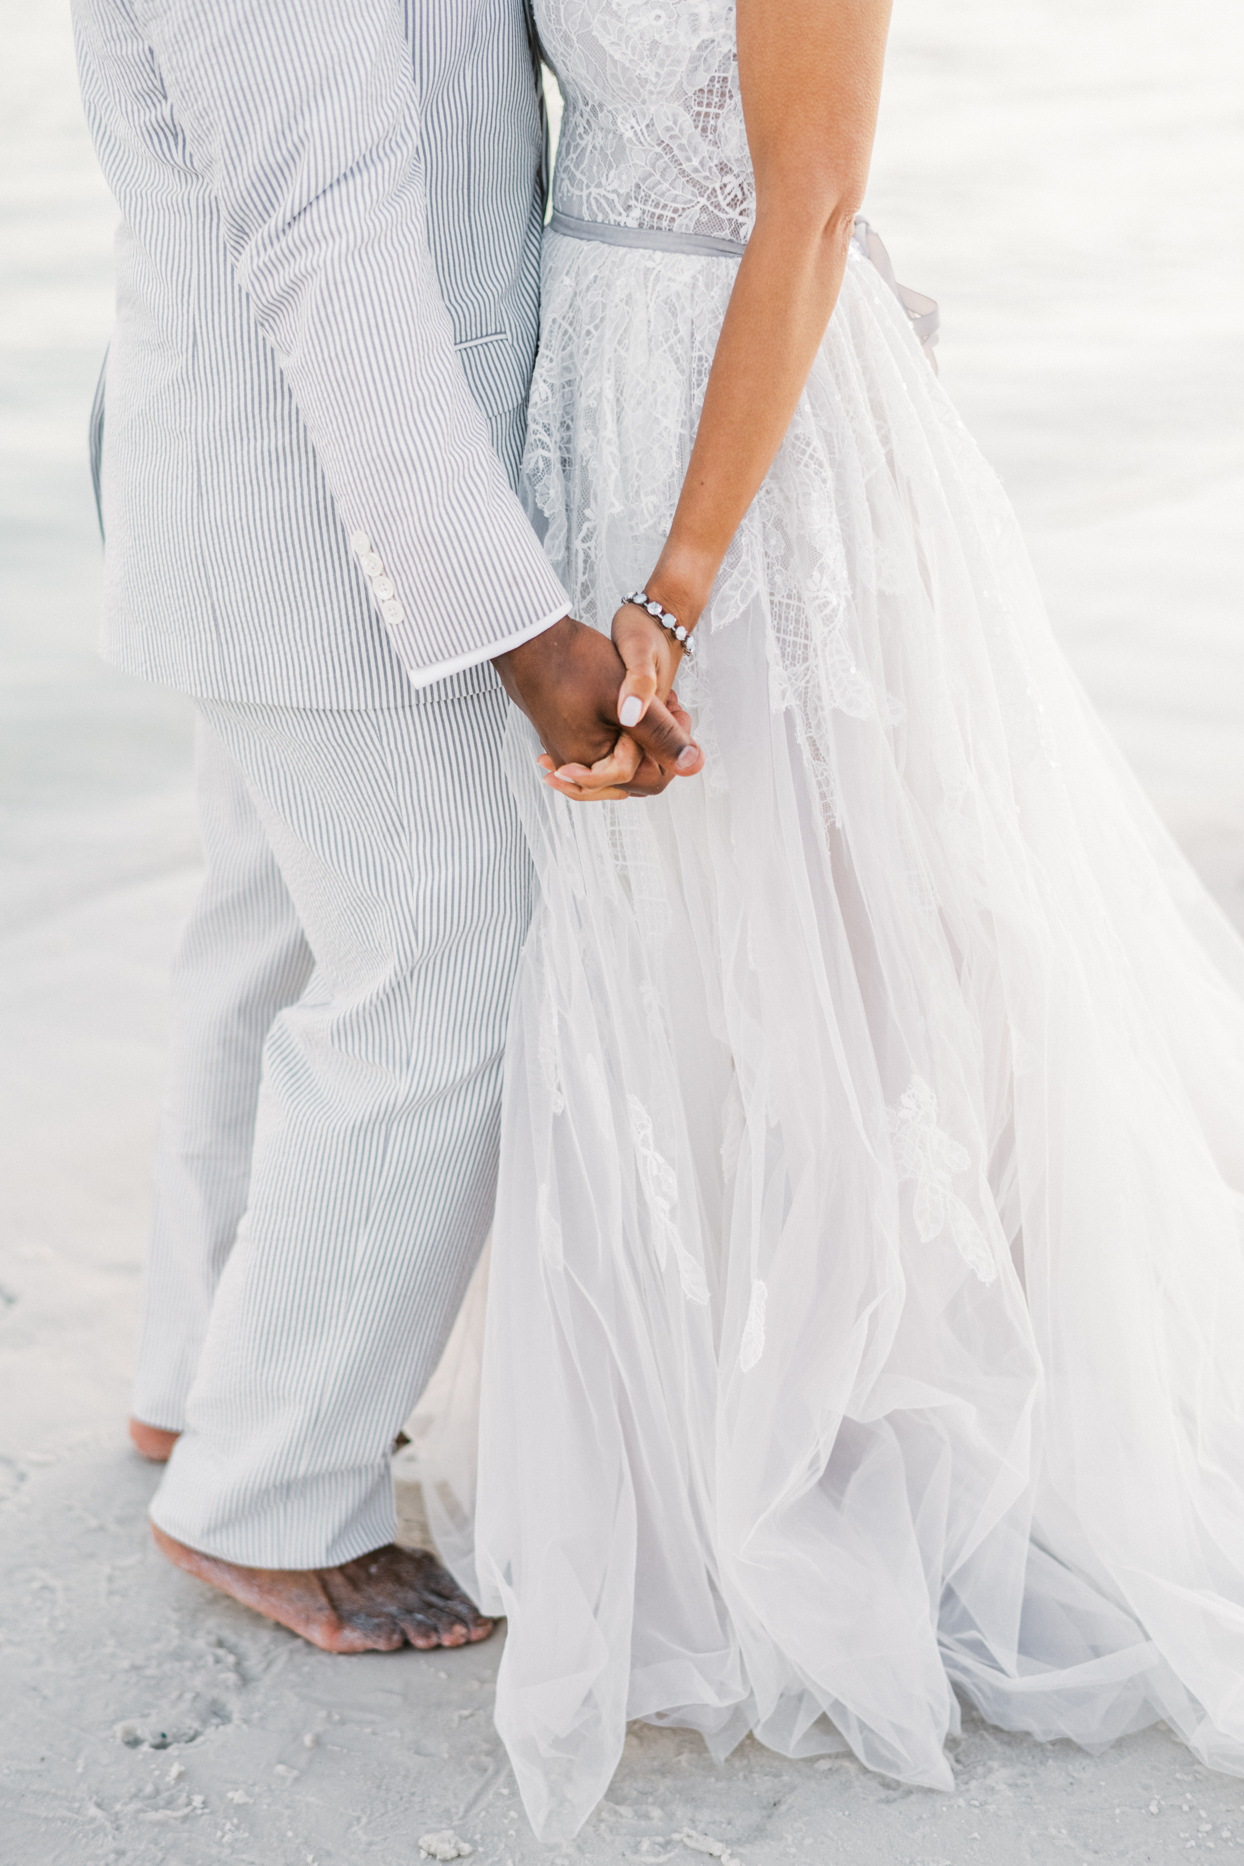 couple holding hands for portrait on beach